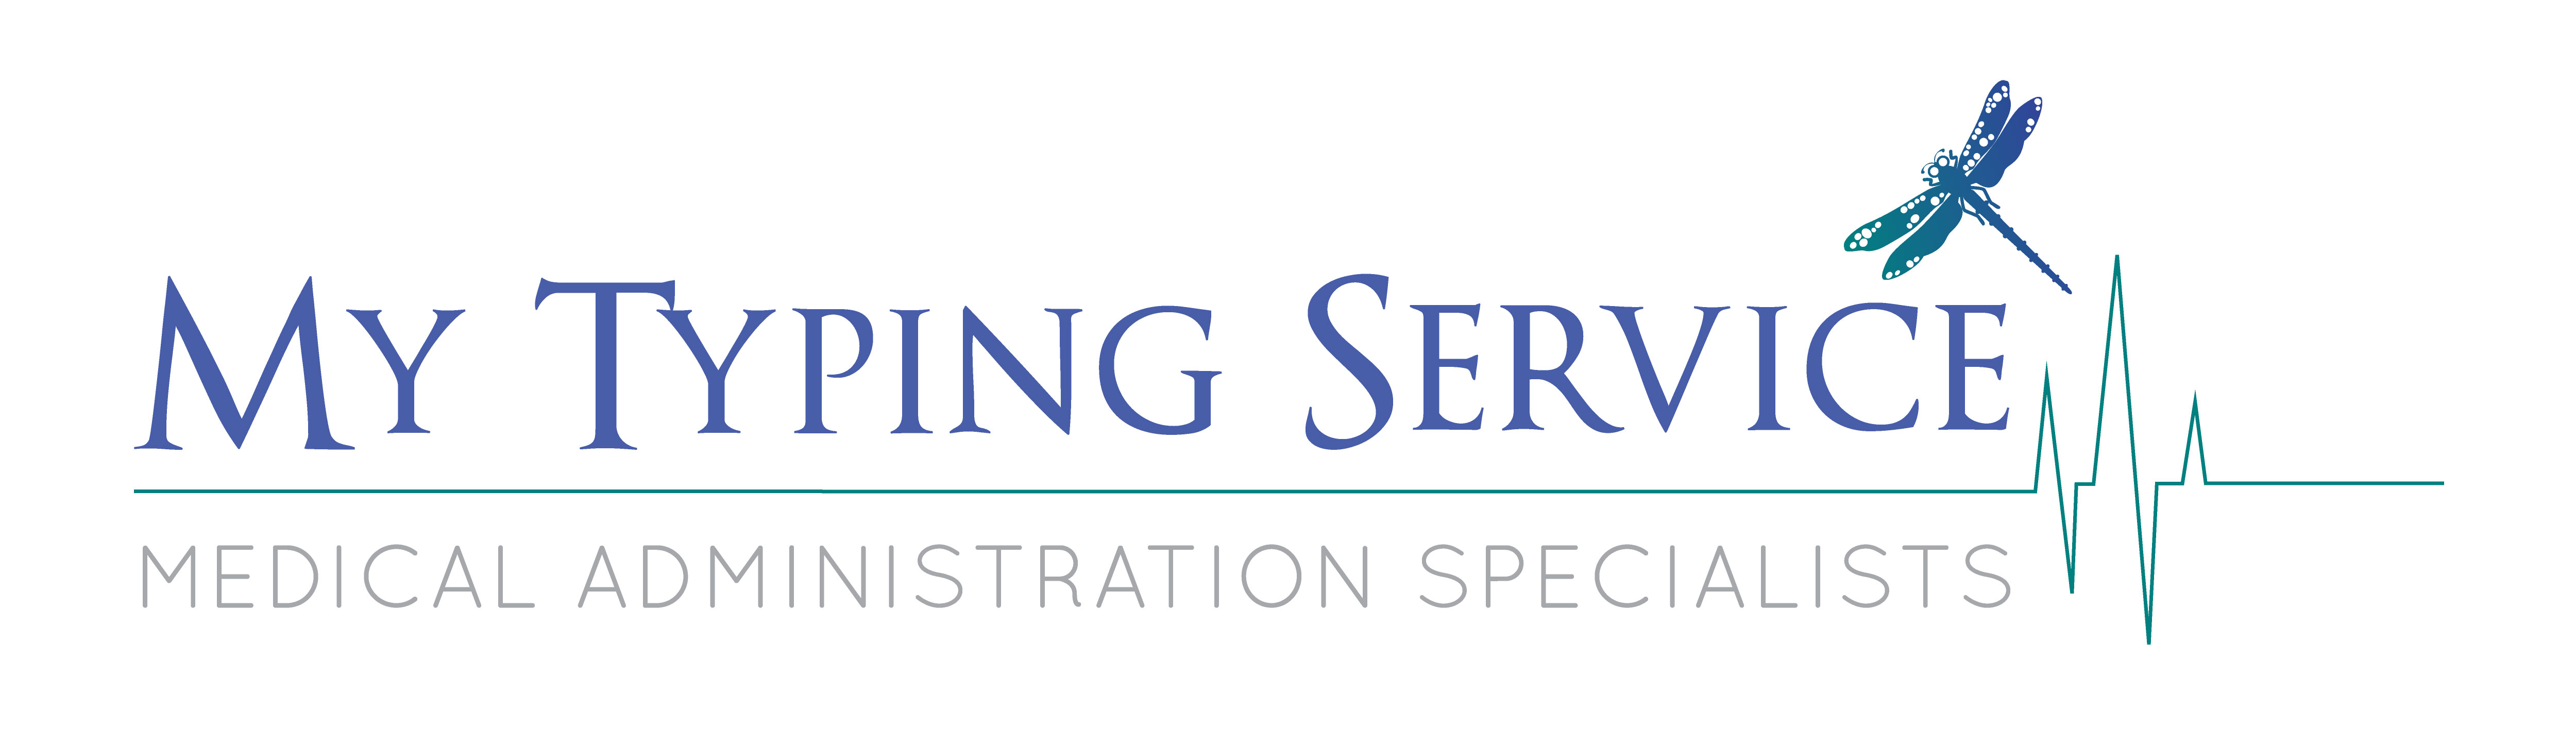 T&C2019 | My Typing Service